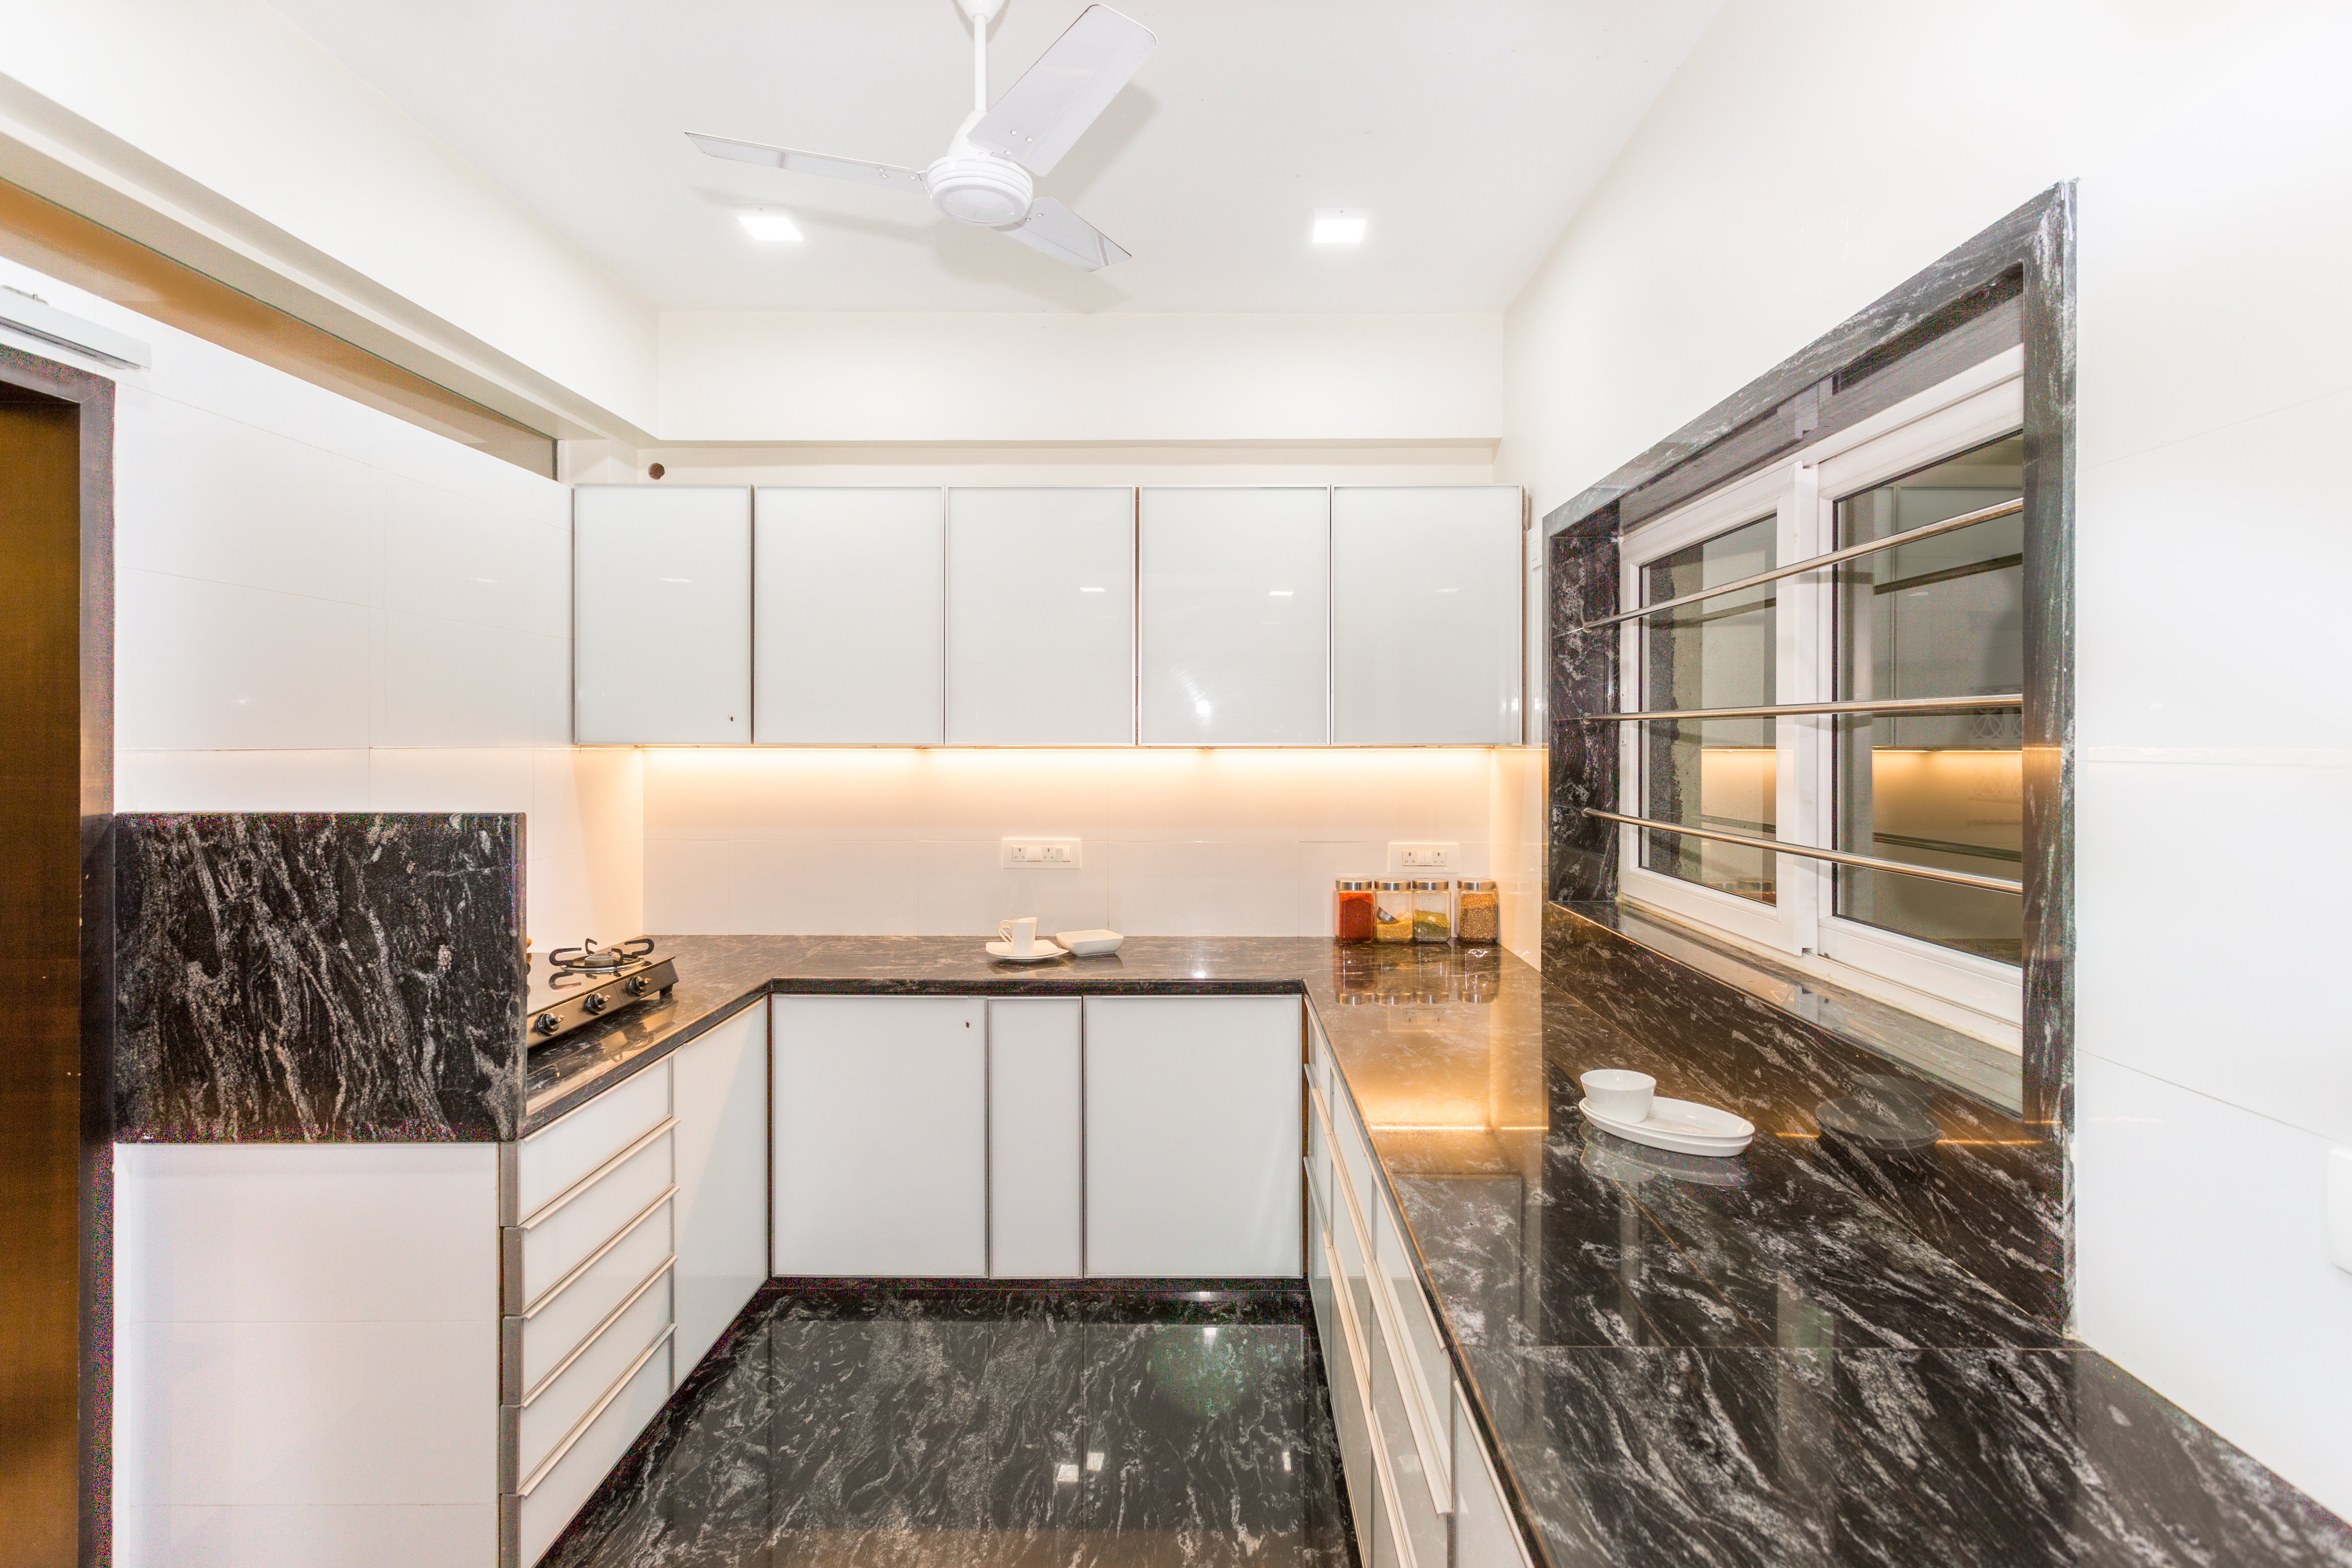 Kitchen View - Architects in Bangalore